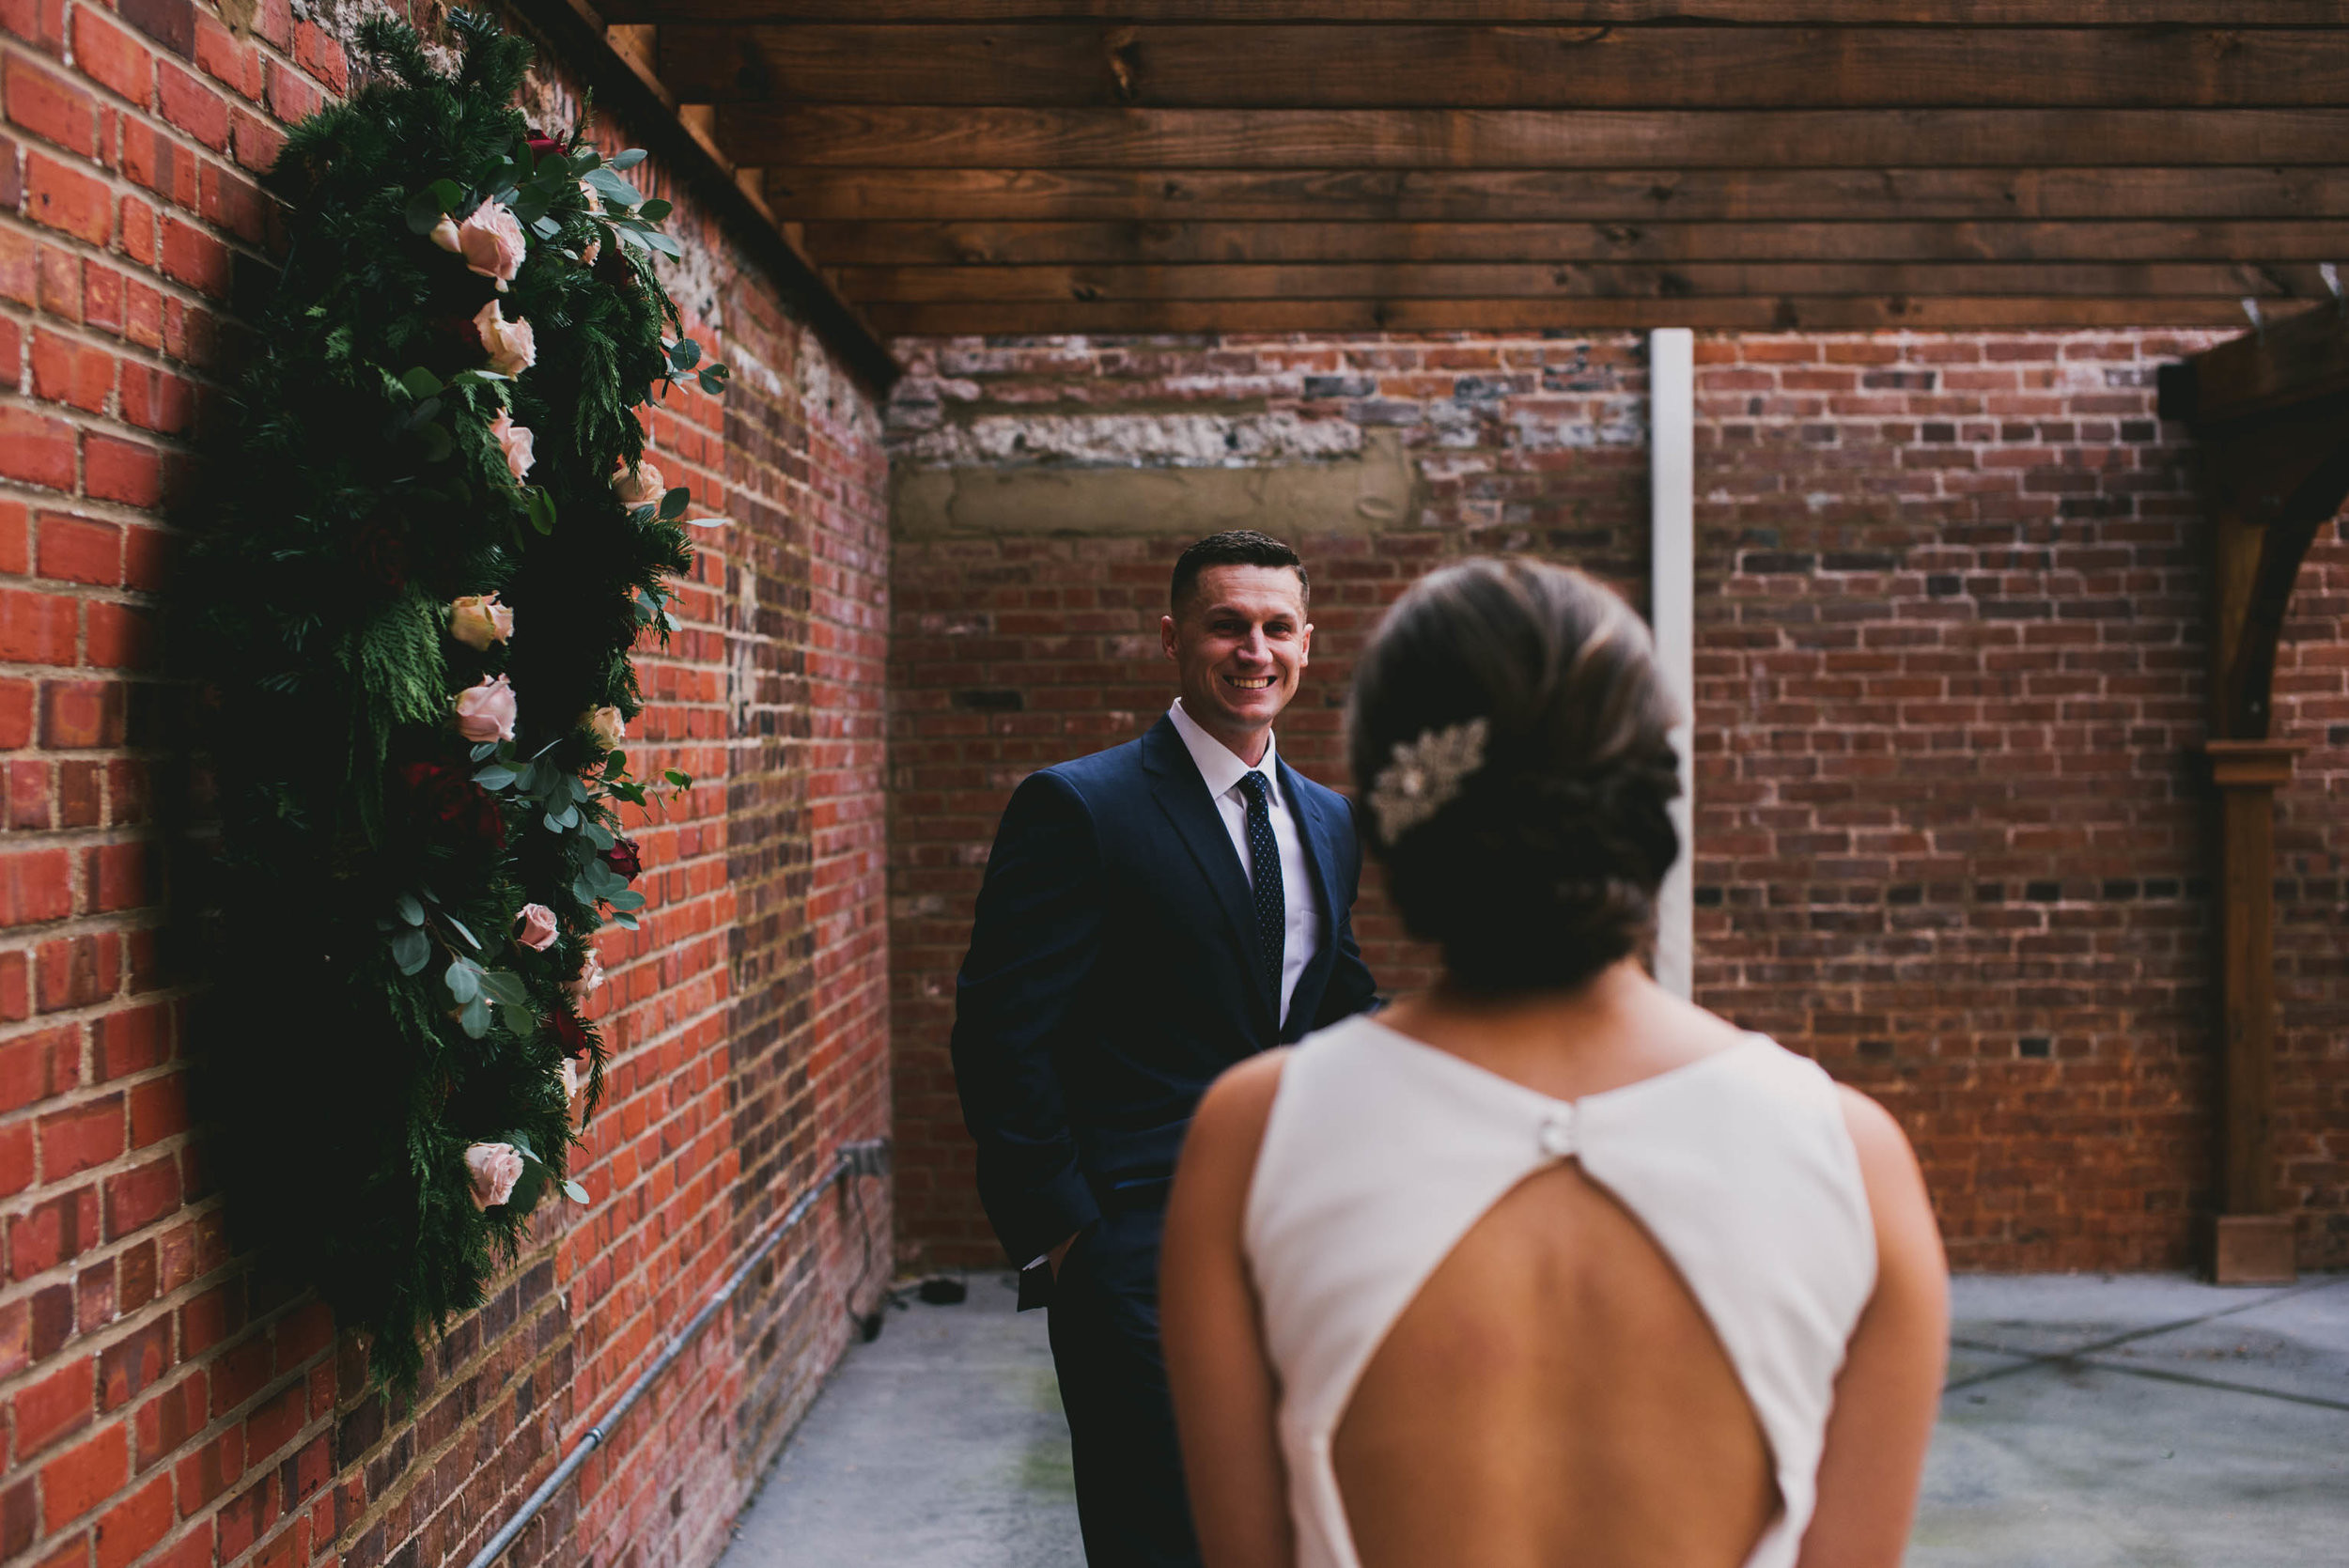 first look between the groom and the bride